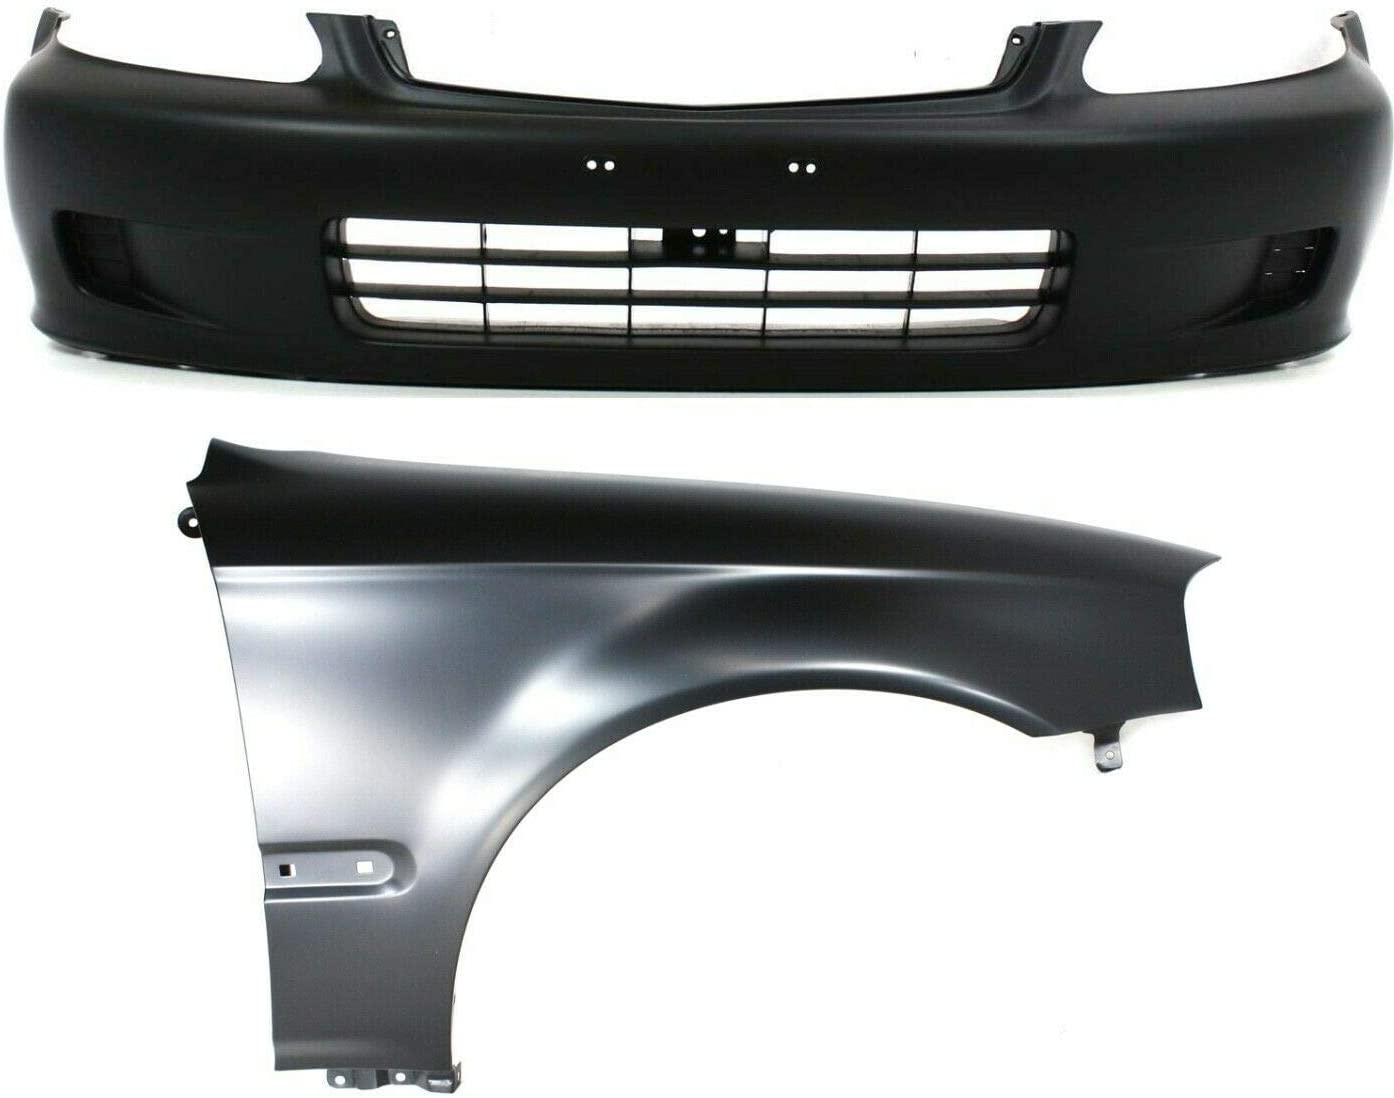 Mesa Mall AntsGroup Bumper Cover Kit For and New color Front Fender 2Pc